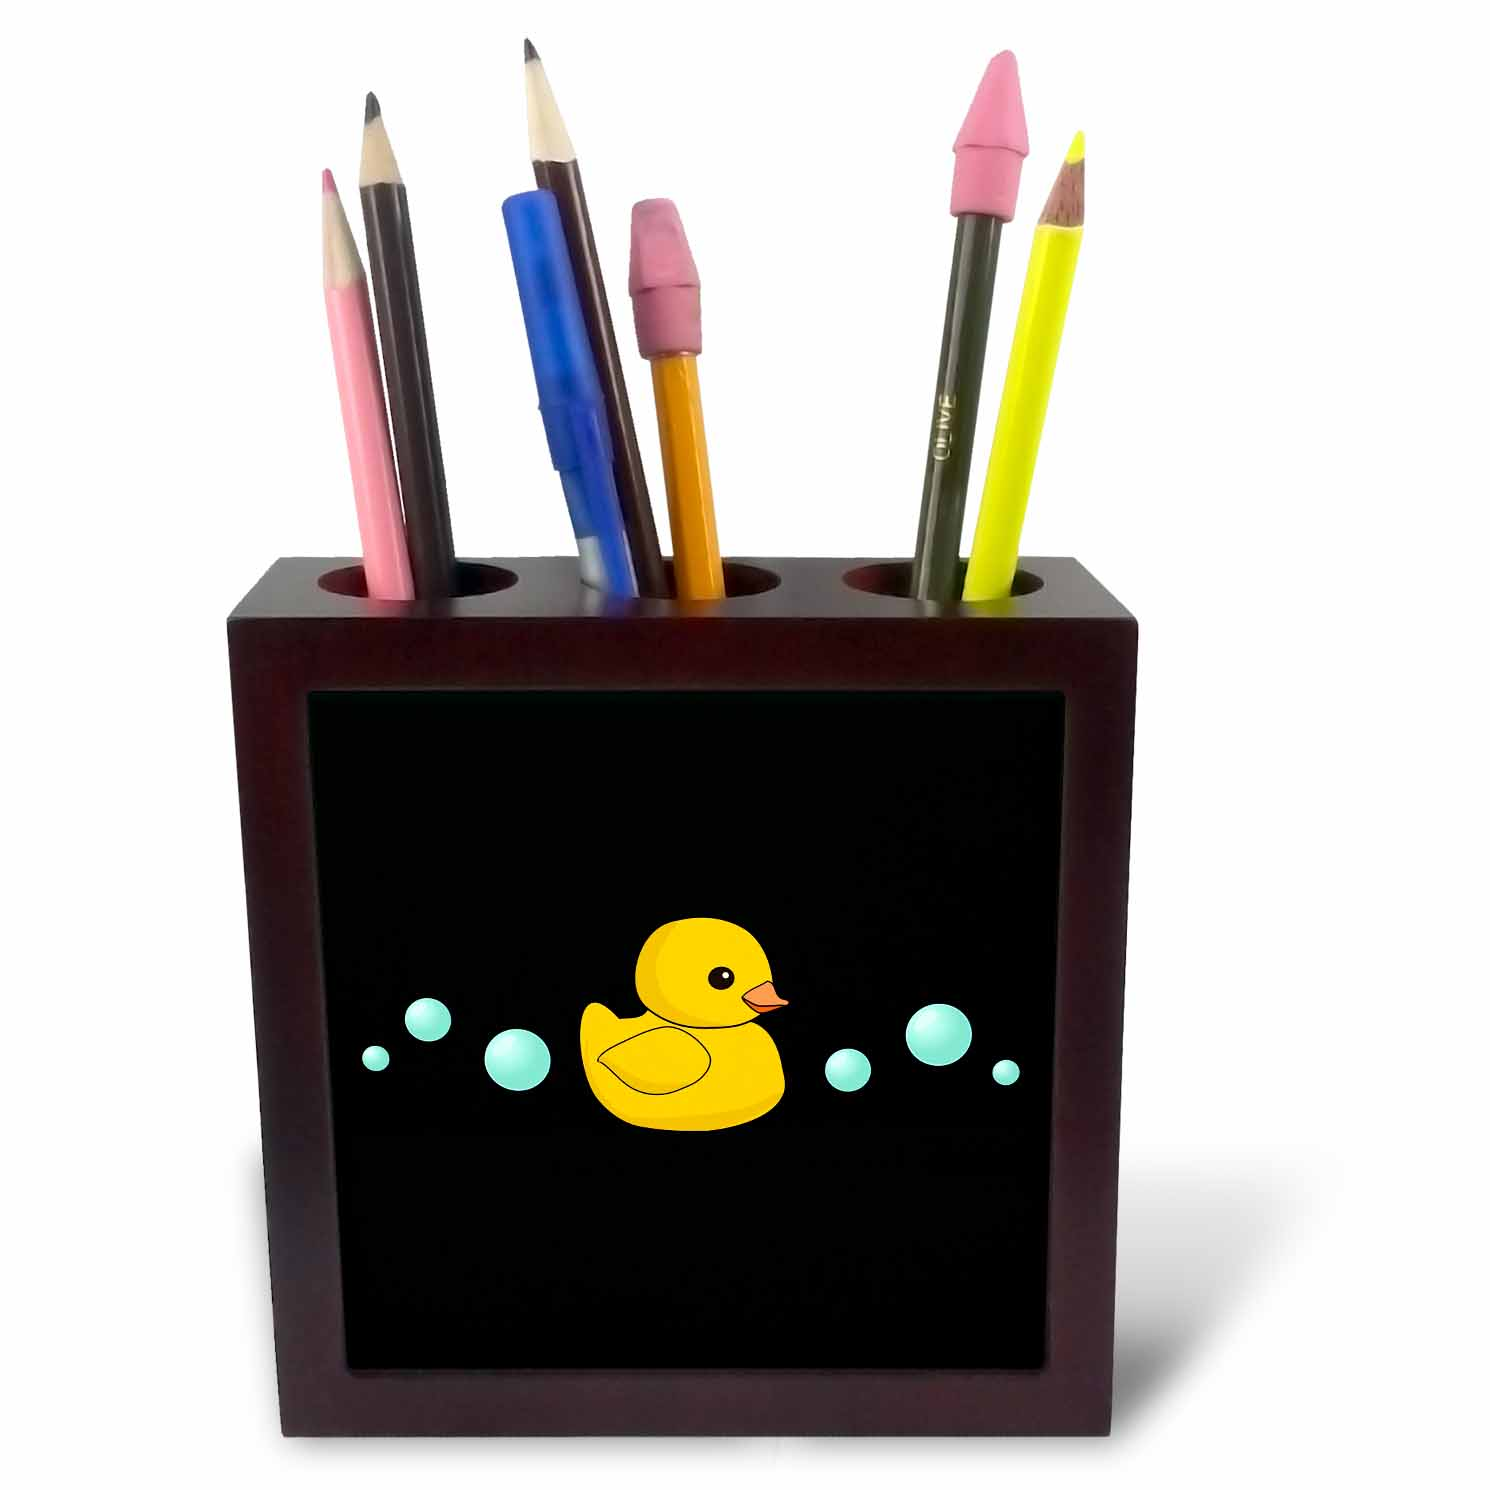 3dRose Cute Yellow Rubber Duckie cartoon with soap bubbles - kawaii ducky on black - adorable sweet duck, Tile Pen Holder, 5-inch